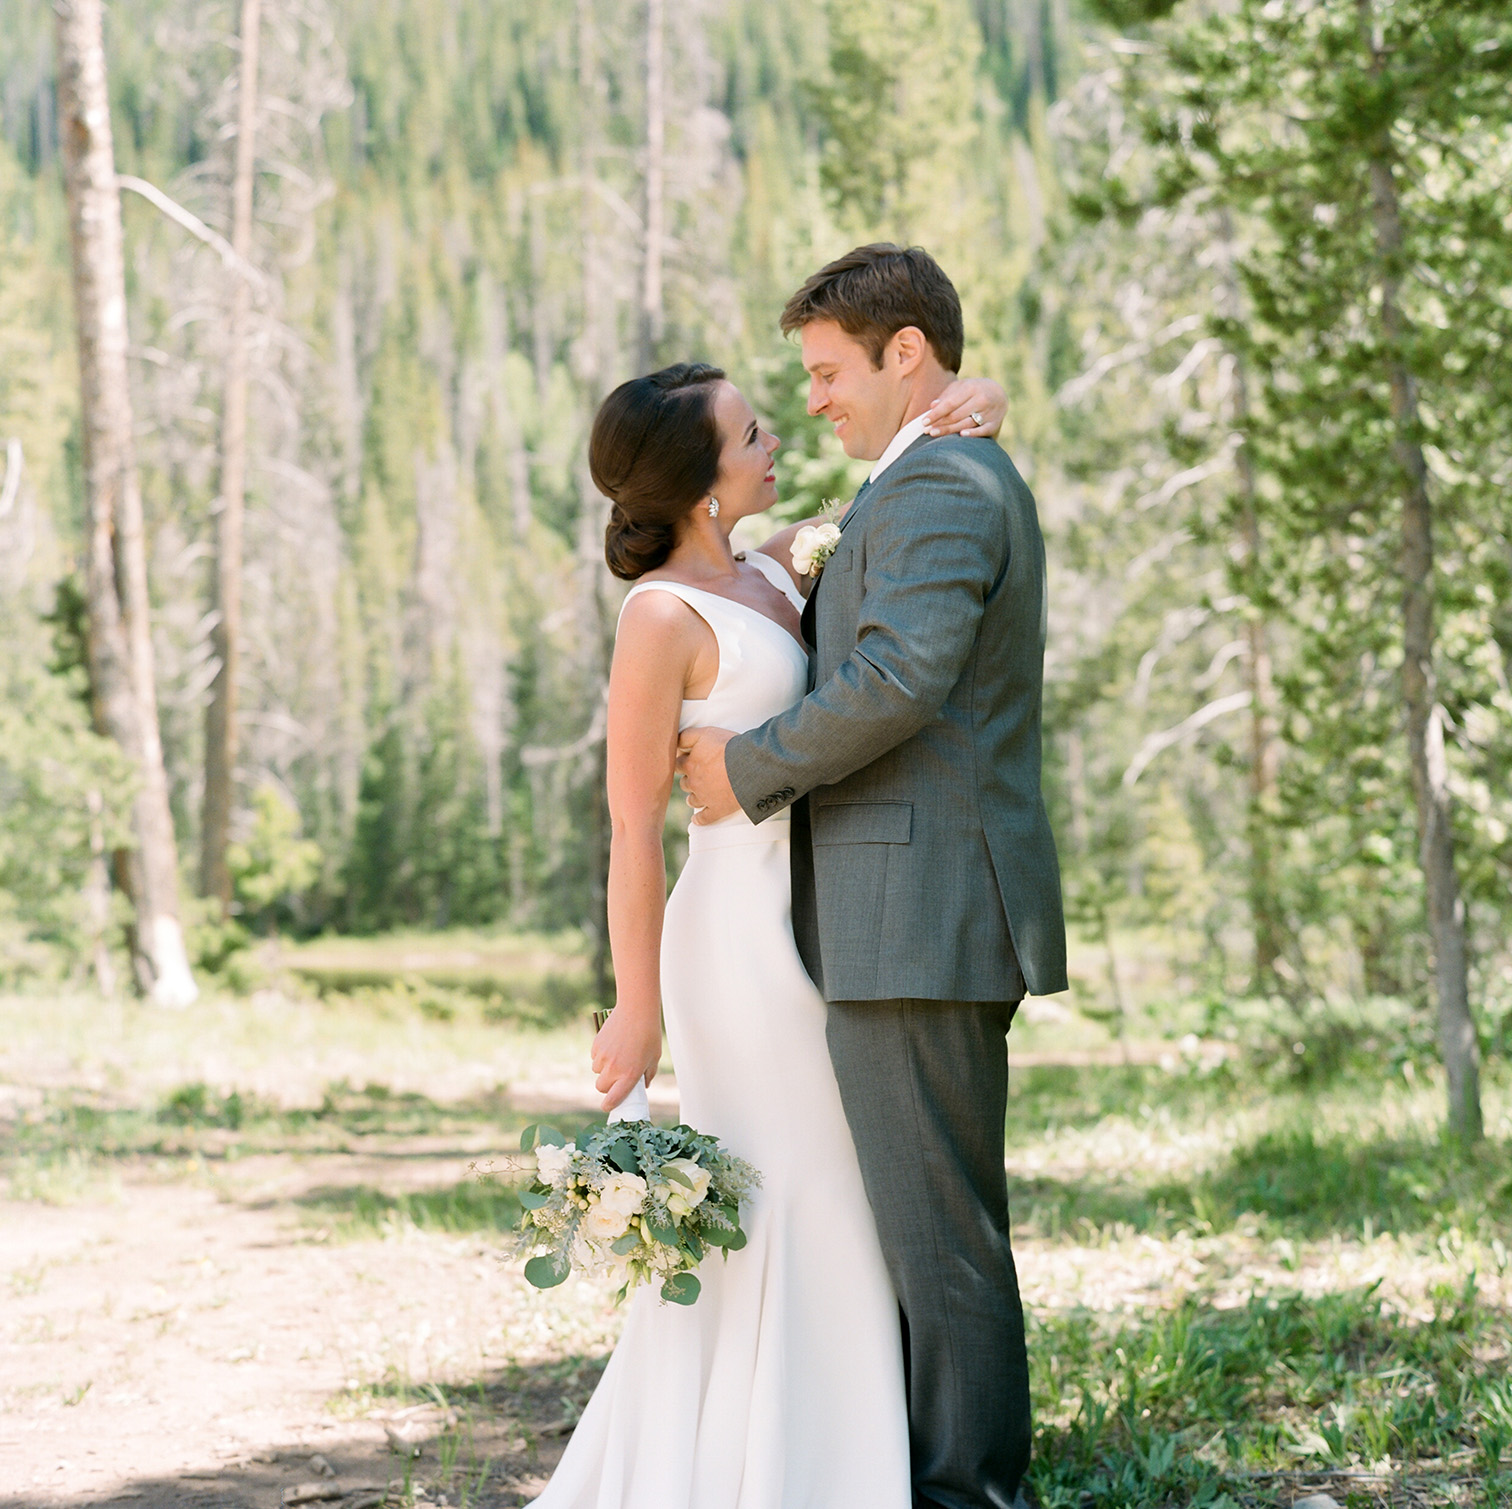 Piney River Ranch Wedding, Desintation Bride and Groom